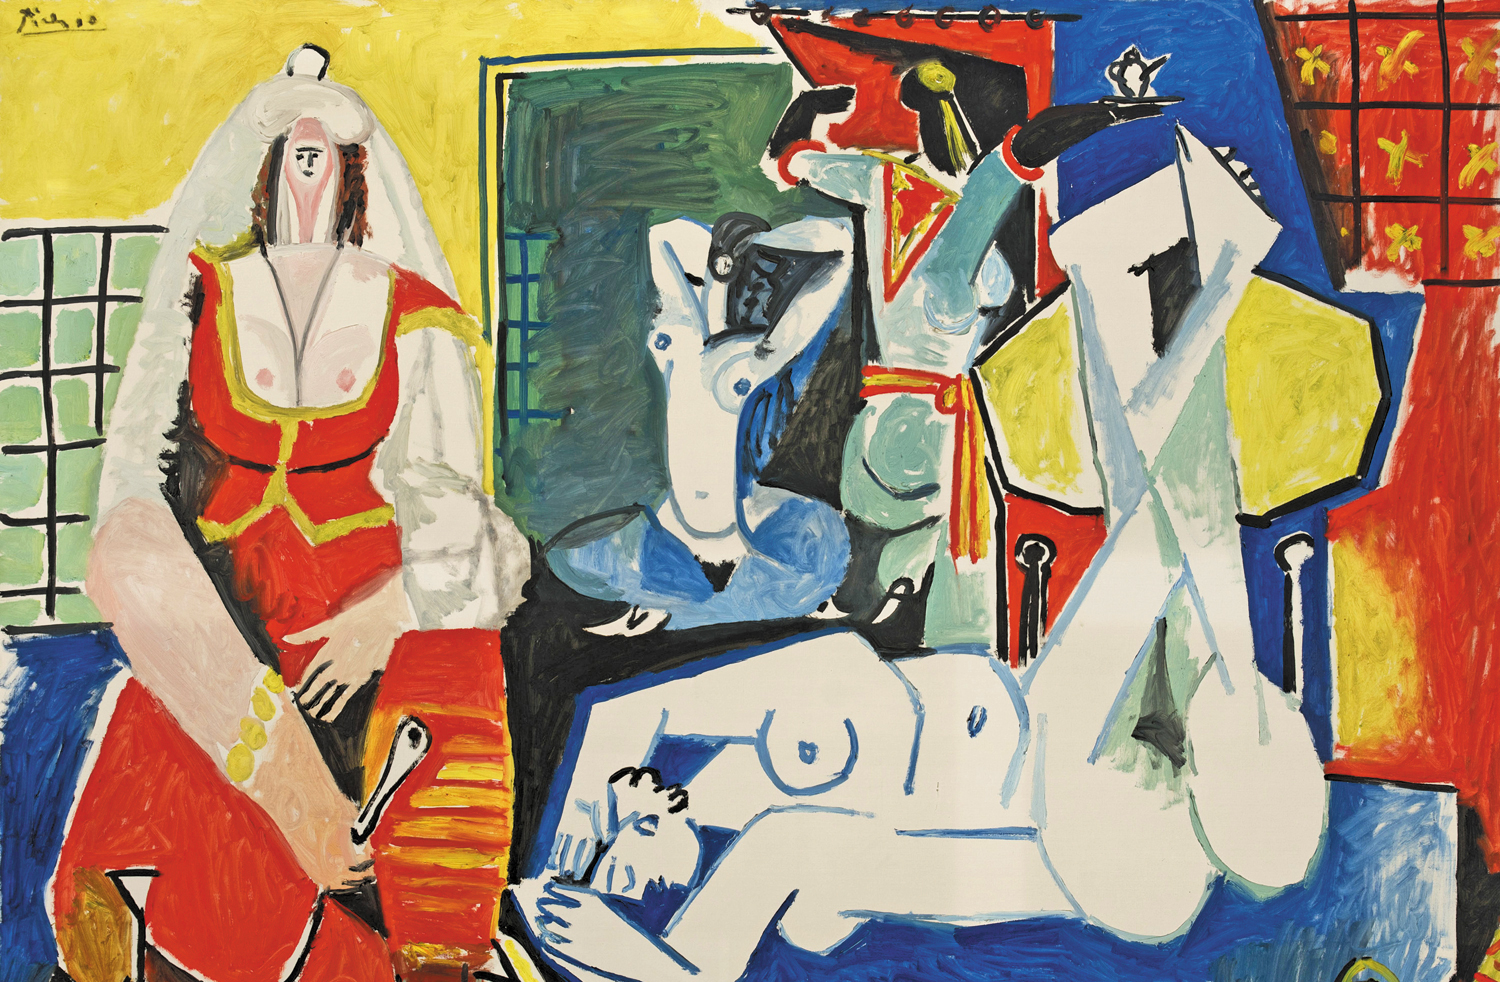 Women-of-Algiers-After-Delacroix-by-Pablo-Picasso-January-26-1955